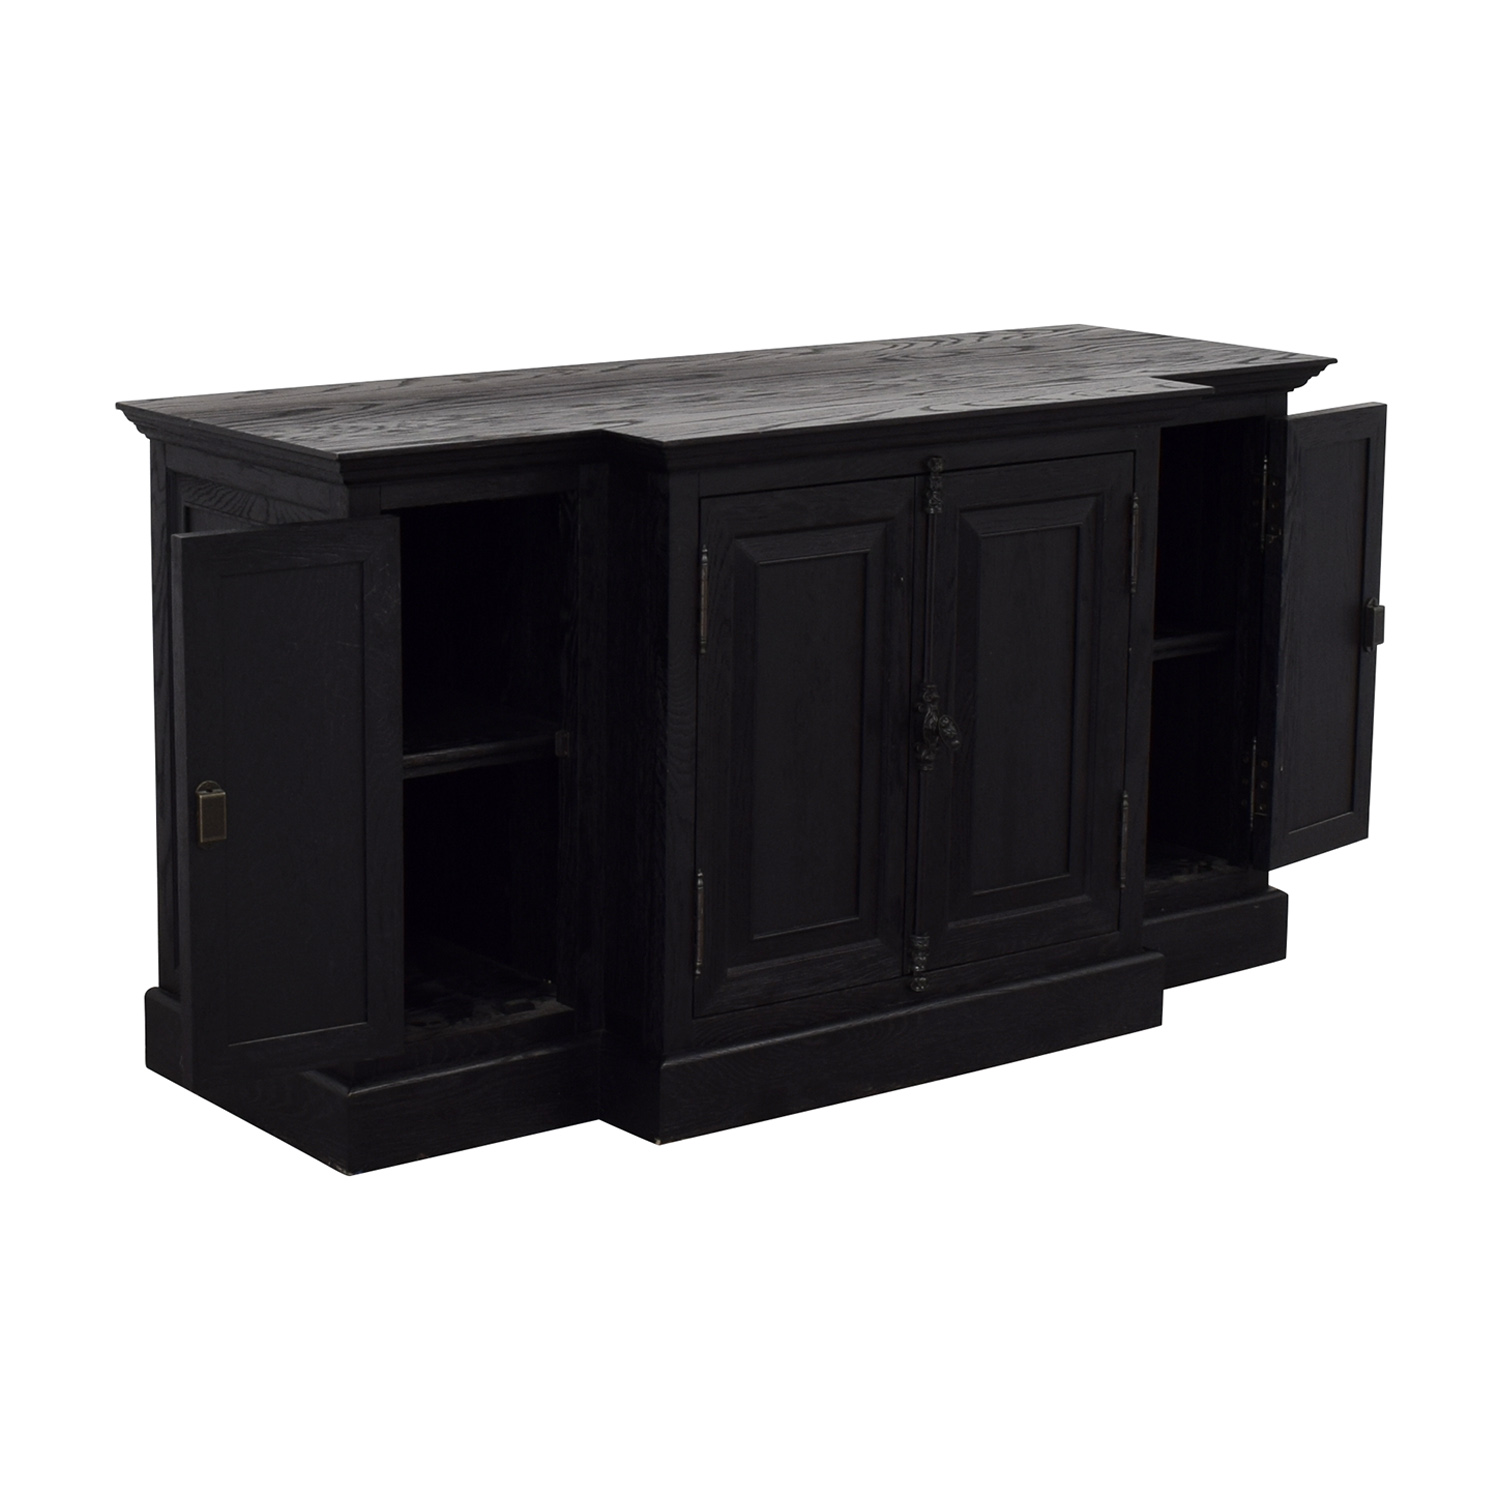 Restoration Hardware Restoration Hardware French Panel Media Console dimensions